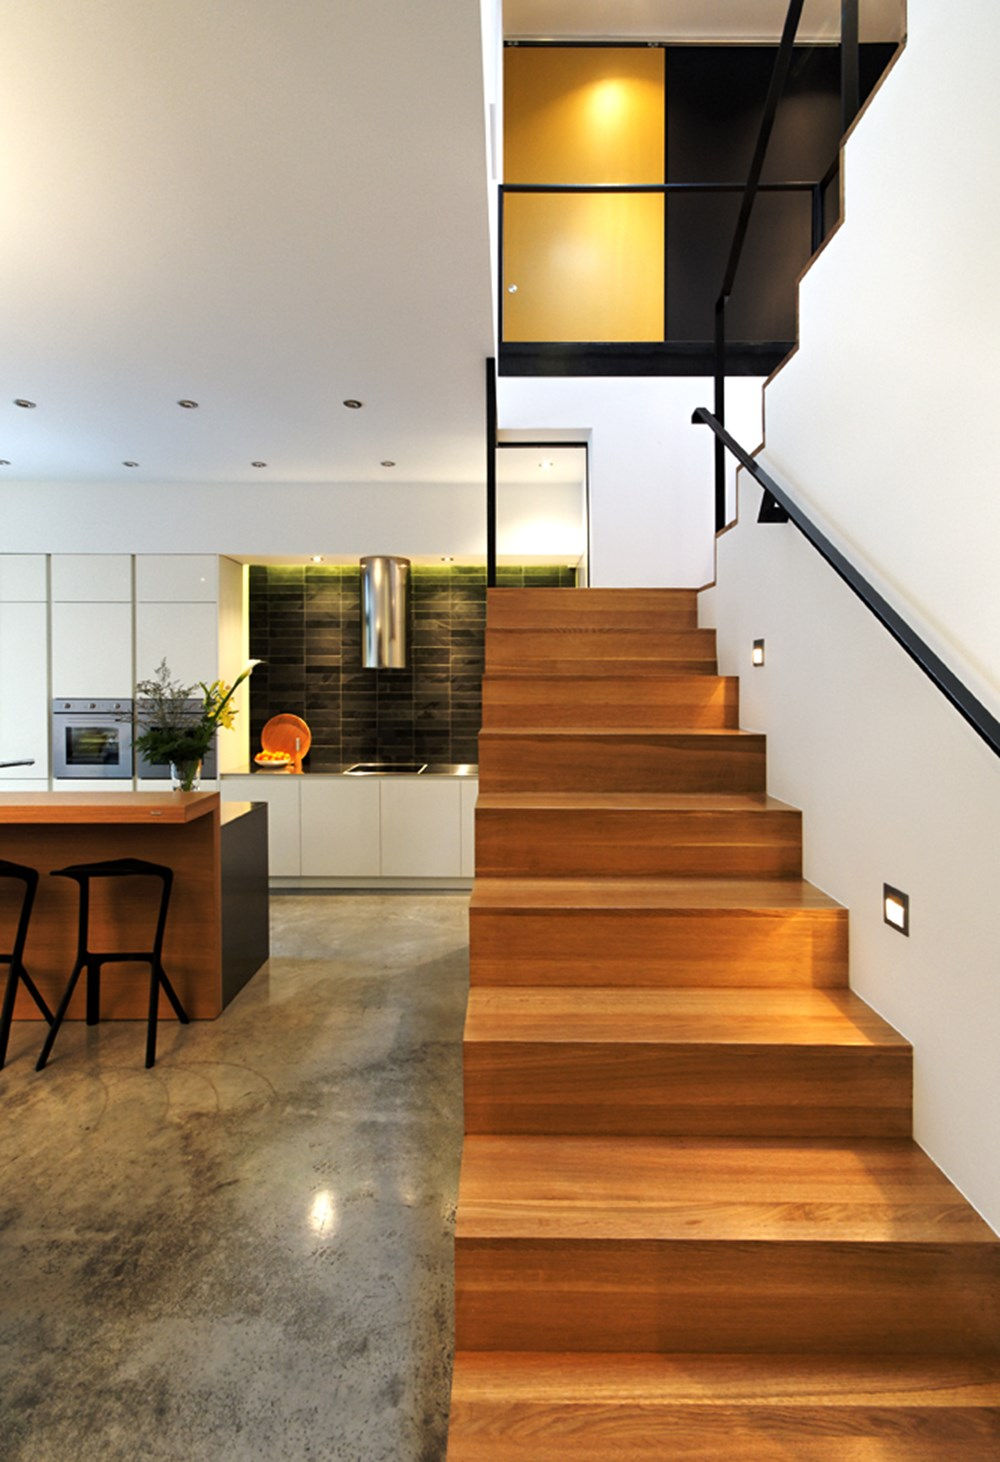 Congregation Residence by Naturehumaine 04